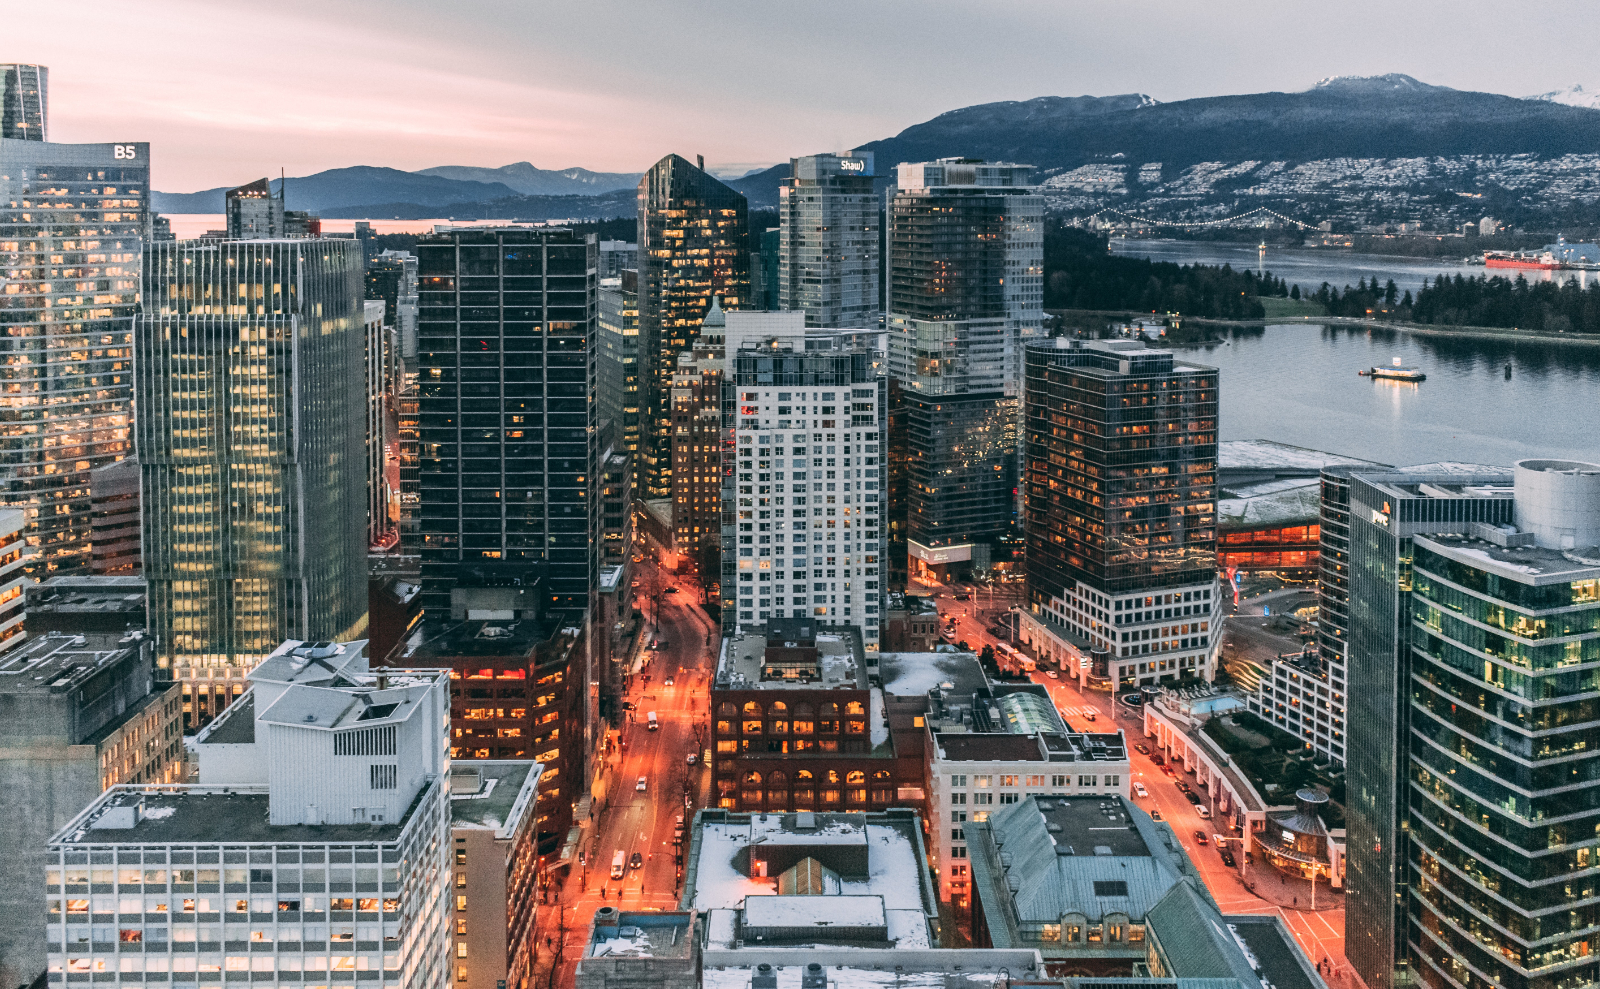 vancouver skyline at dusk with mountains in the background